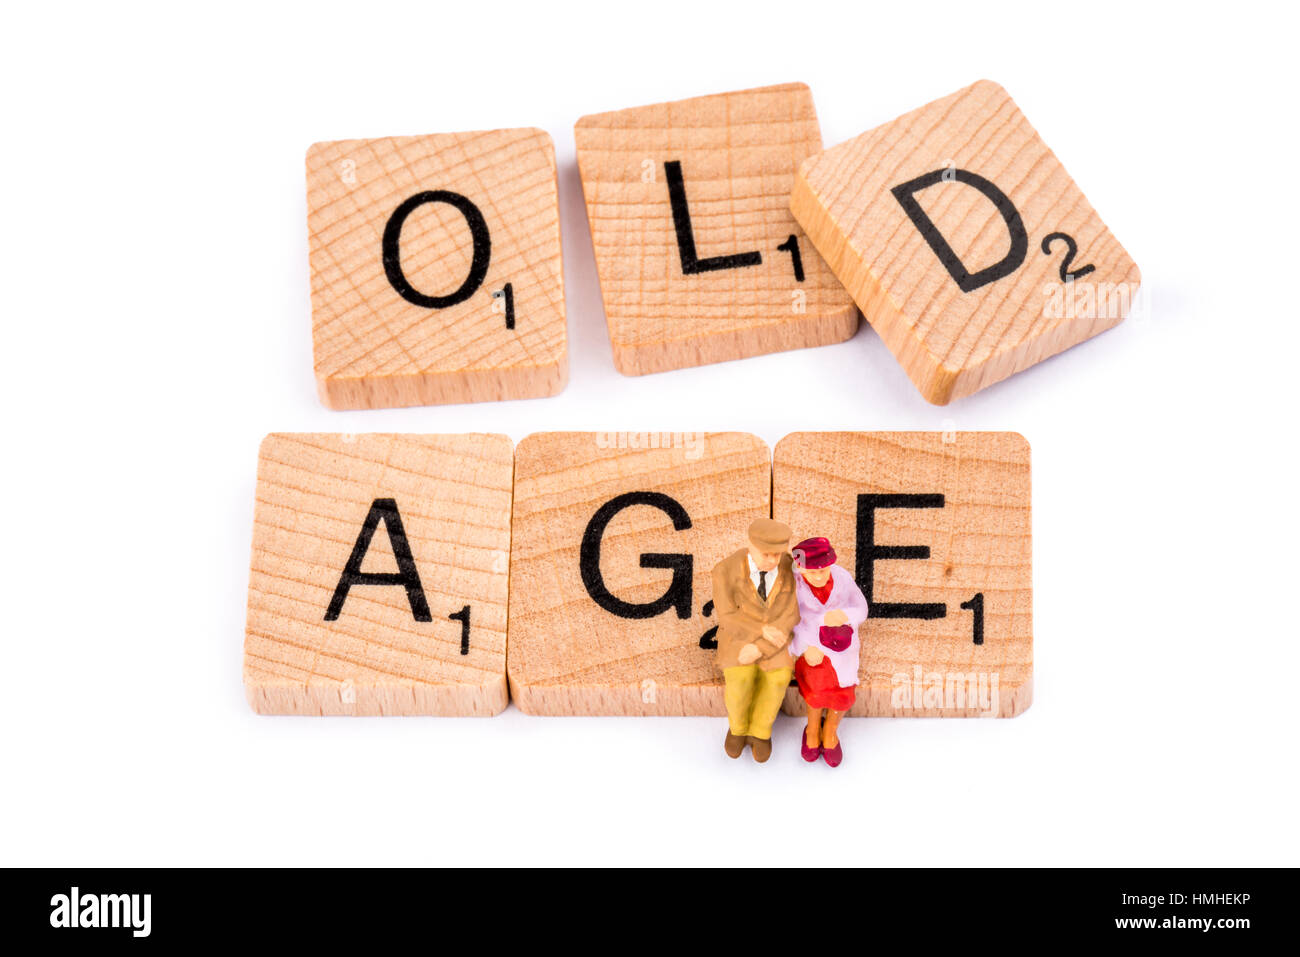 Scrabble letters make up the word OLD AGE. An elderly couple sit on the word AGE. Stock Photo